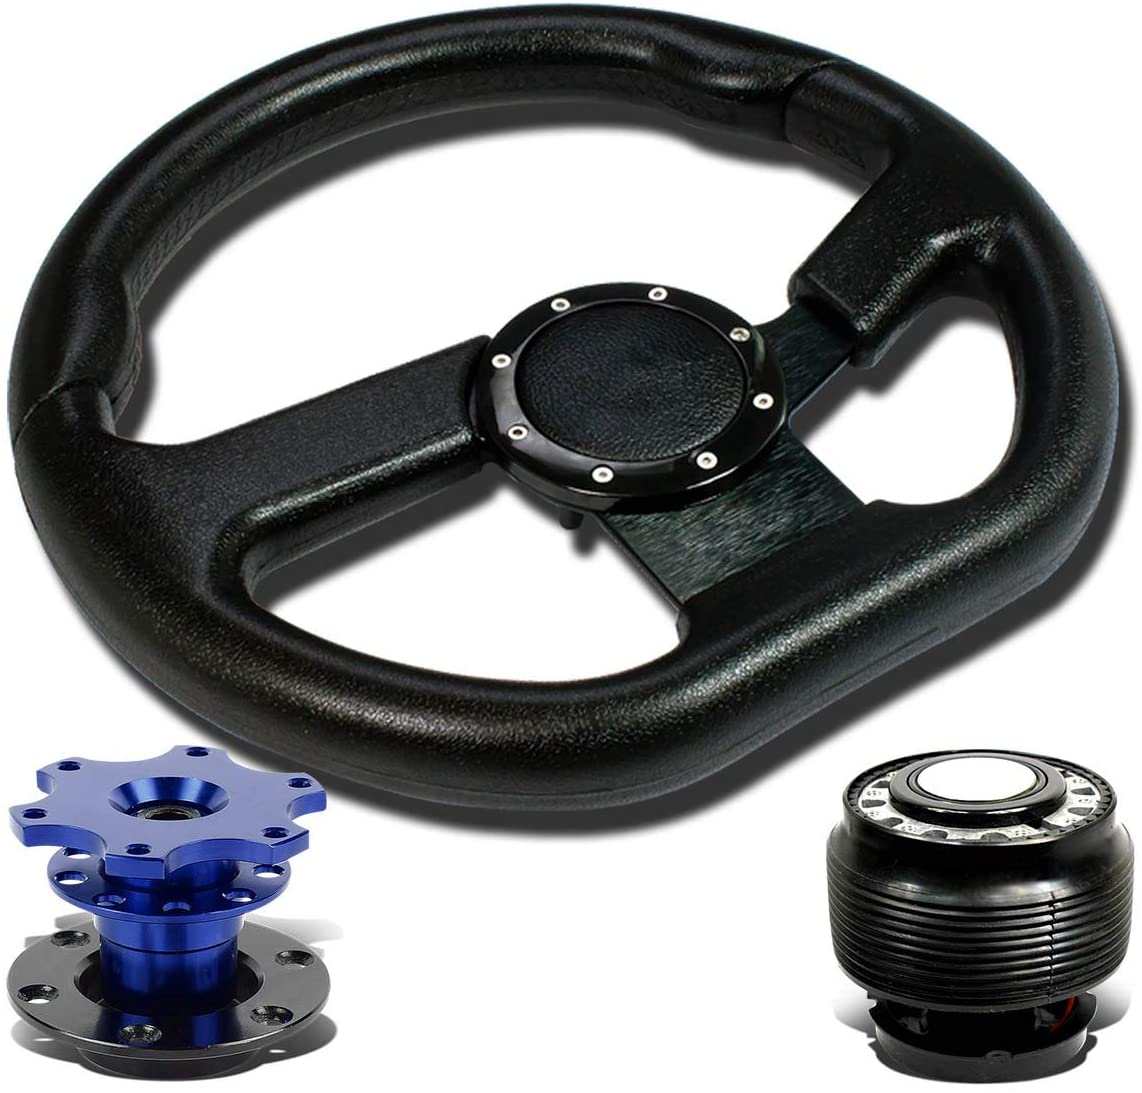 Replacement for Civic/CRX/Integra 320mm SW-T150 Steering Wheel+Hub Adapter+Blue 2 inches Quick Release